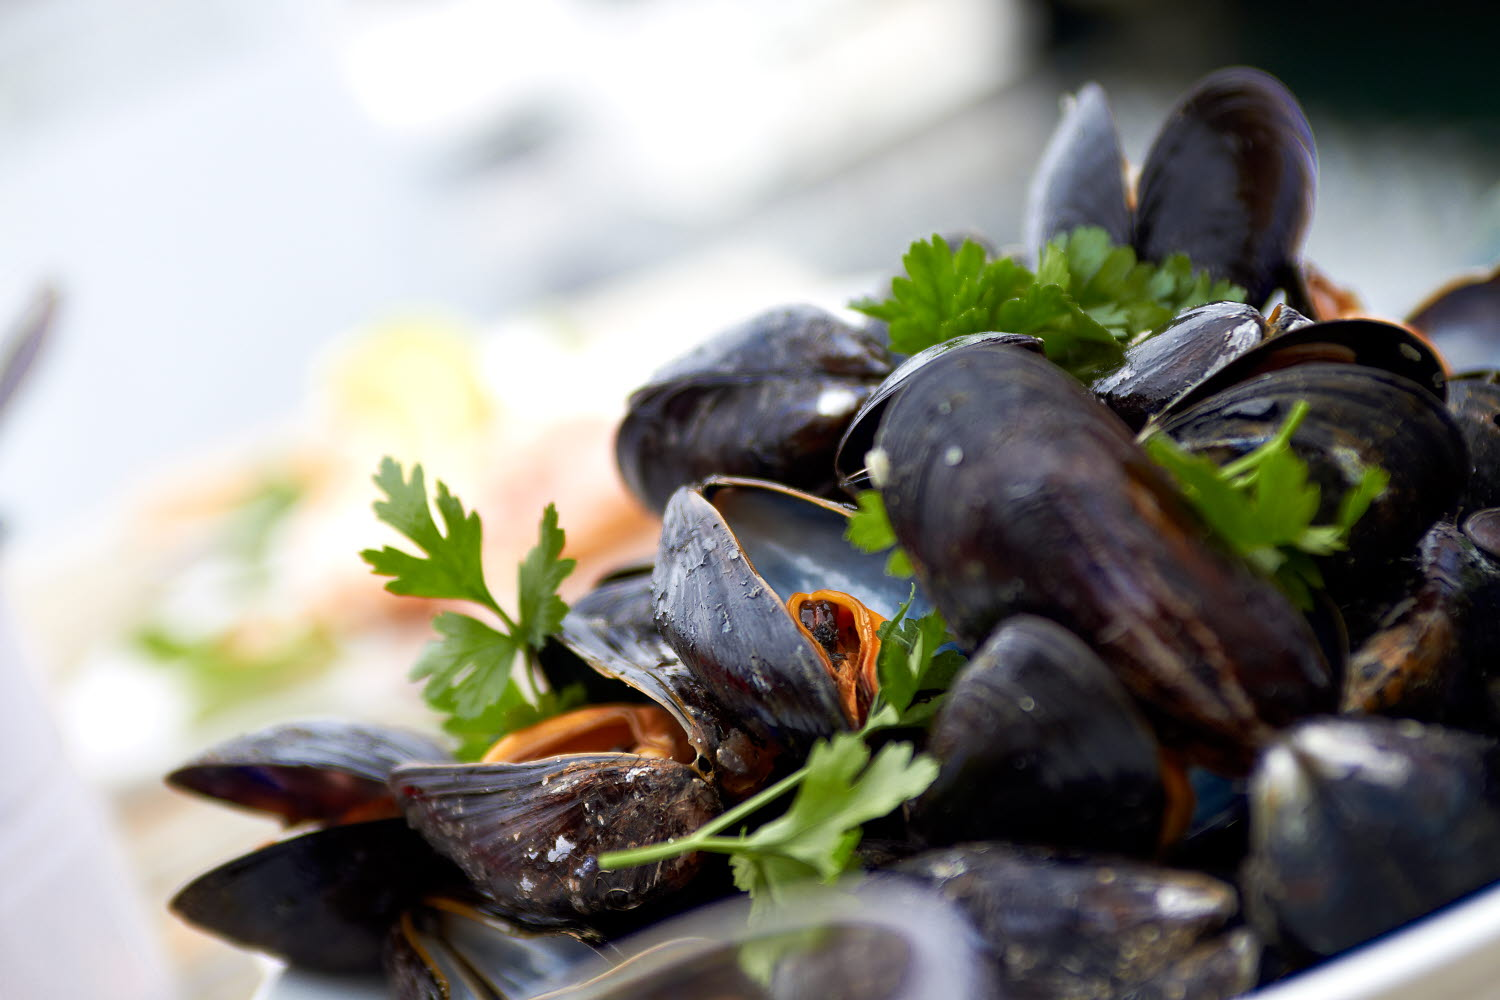 Cooked mussels on a plate - Photo cred Jonas Ingman